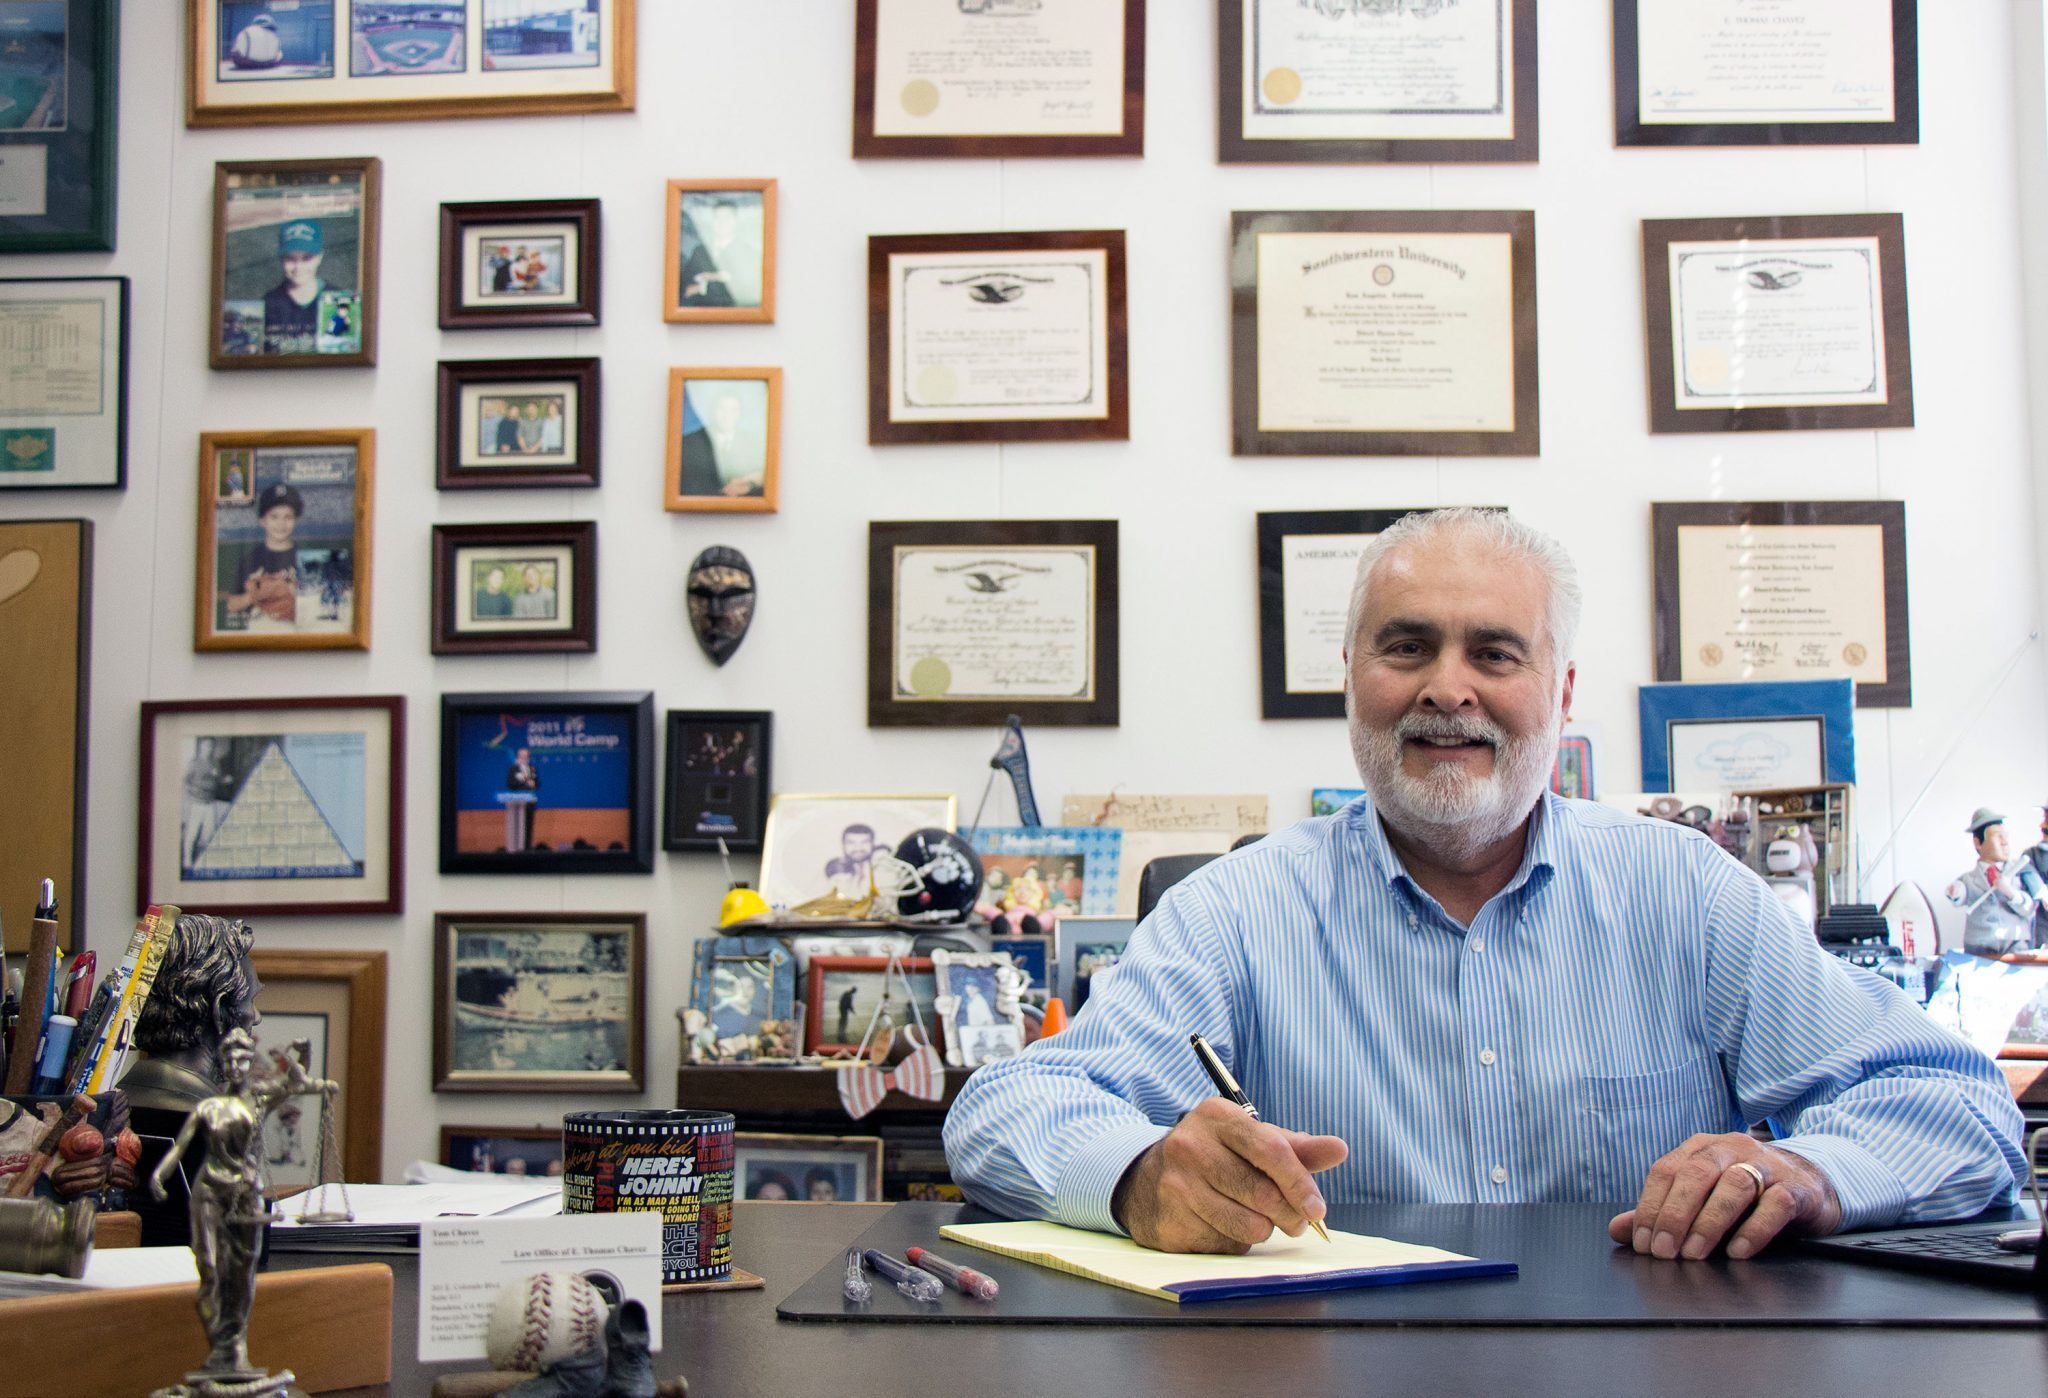 Keely Damara/Courier E. Tom Chavez, 61, of Temple City sits at his desk in his law office in Pasadena, Calif. on Friday, September 11, 2015. Chavez has served on the Temple City City Council since 2009. He first served as mayor in 2011 and again in 2015. He has practiced civil law for 30 years and has taught law classes part-time at PCC for 23 years.